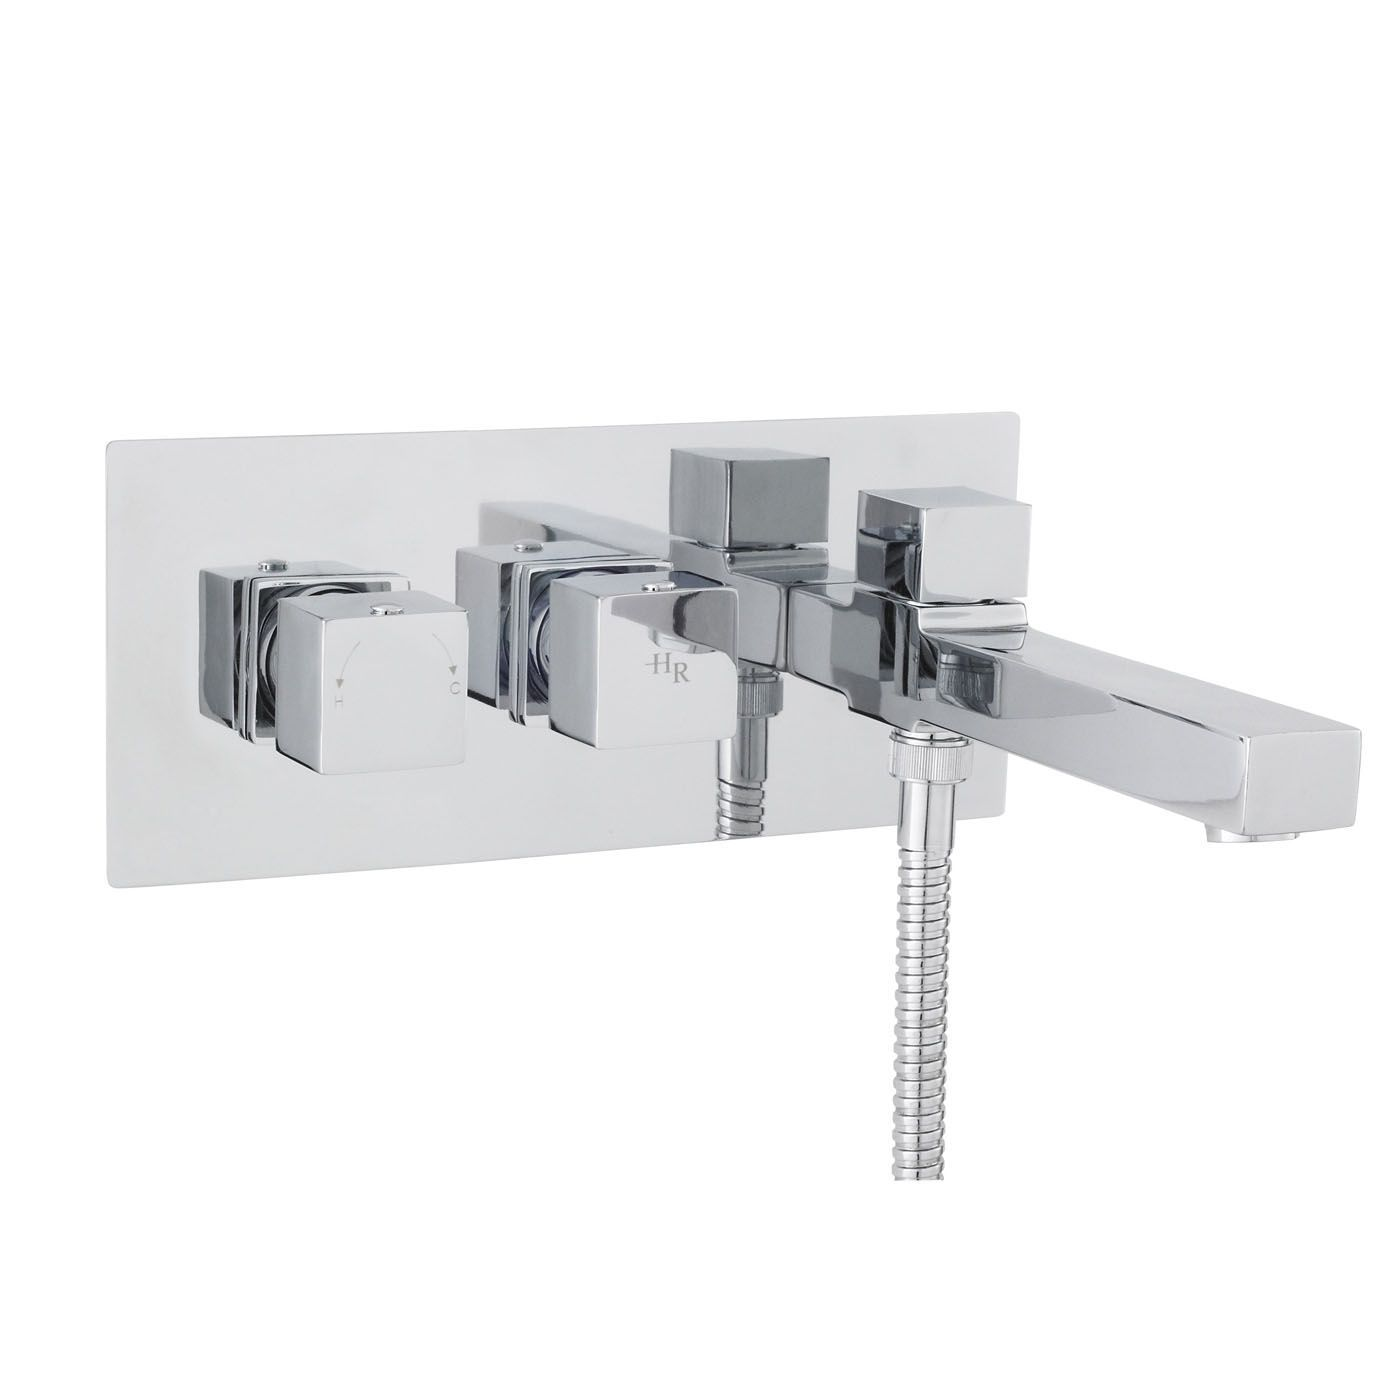 Kubix Thermostatic Wall Mounted Tub Shower Mixer